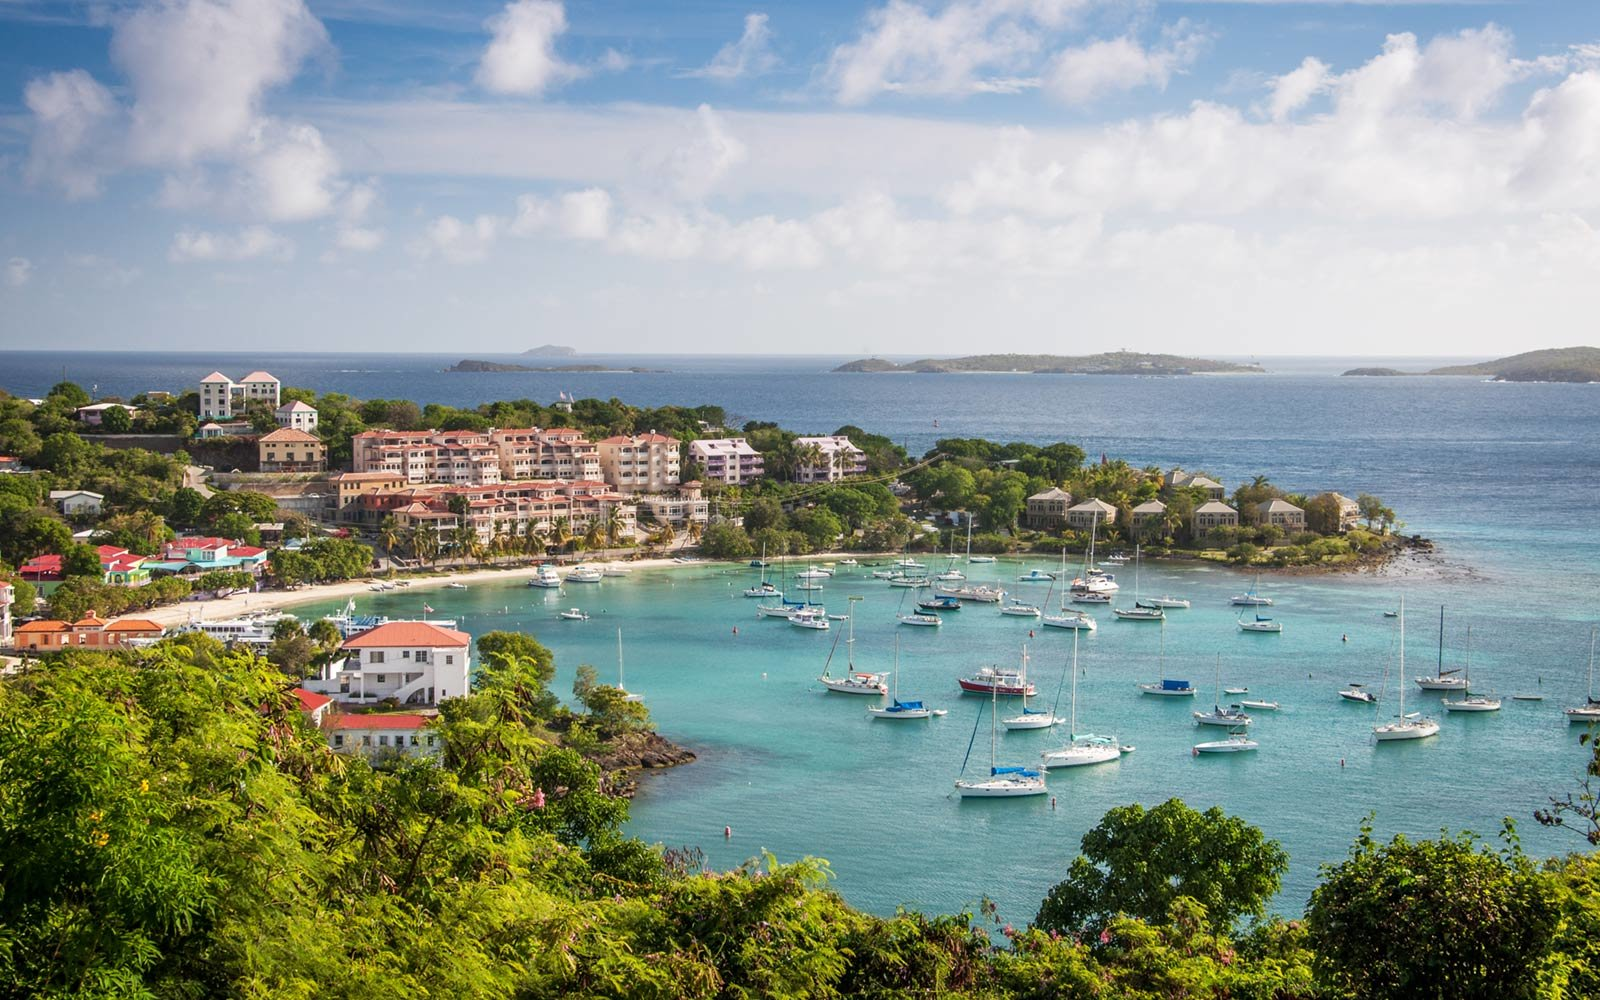 Cruz Bay Harbor, St. John, U.S. Virgin Islands